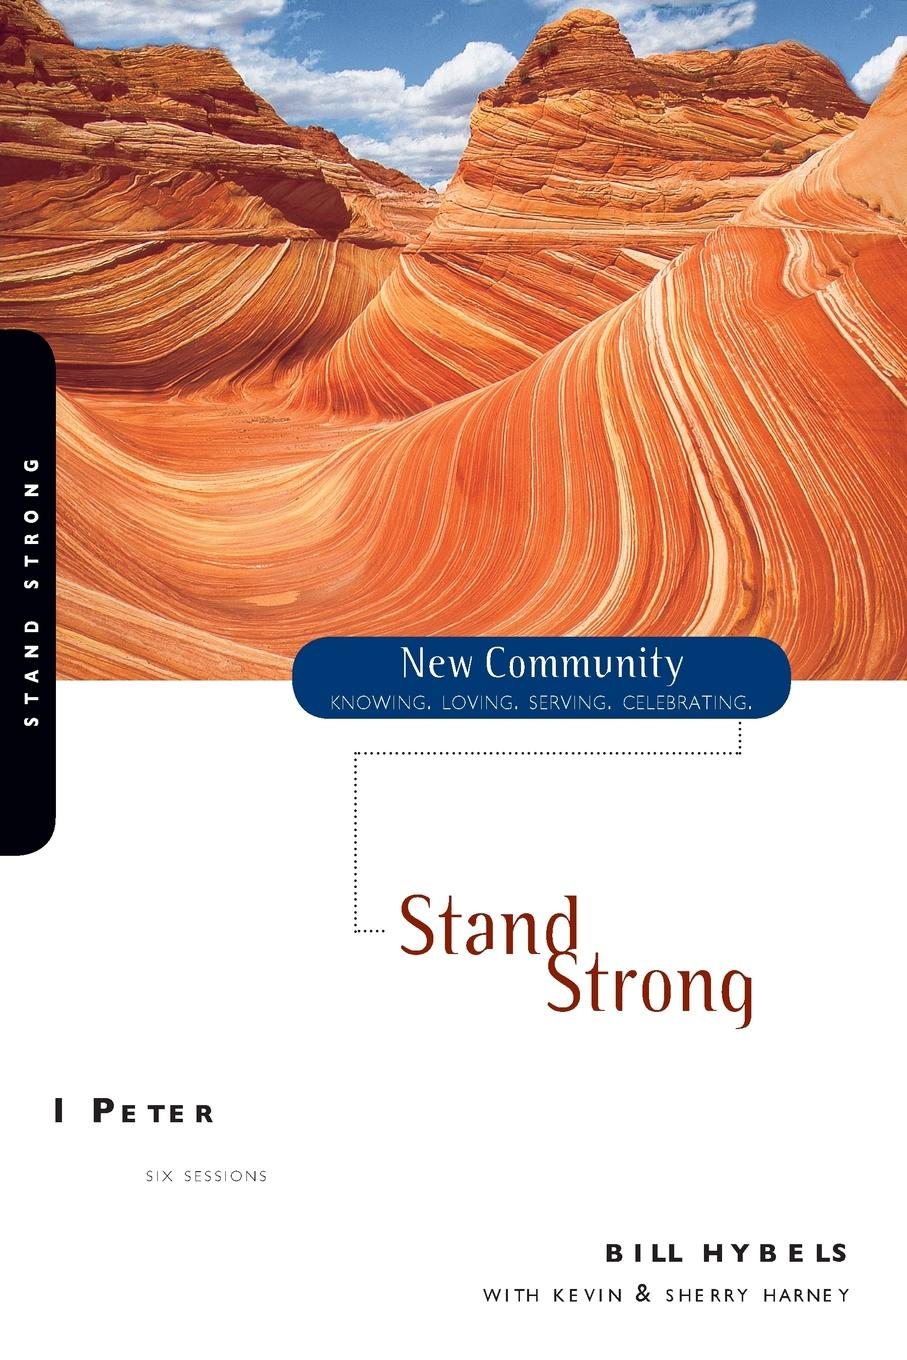 Bill Hybels 1 Peter. Stand Strong bill hybels sermon on the mount 1 connect with god